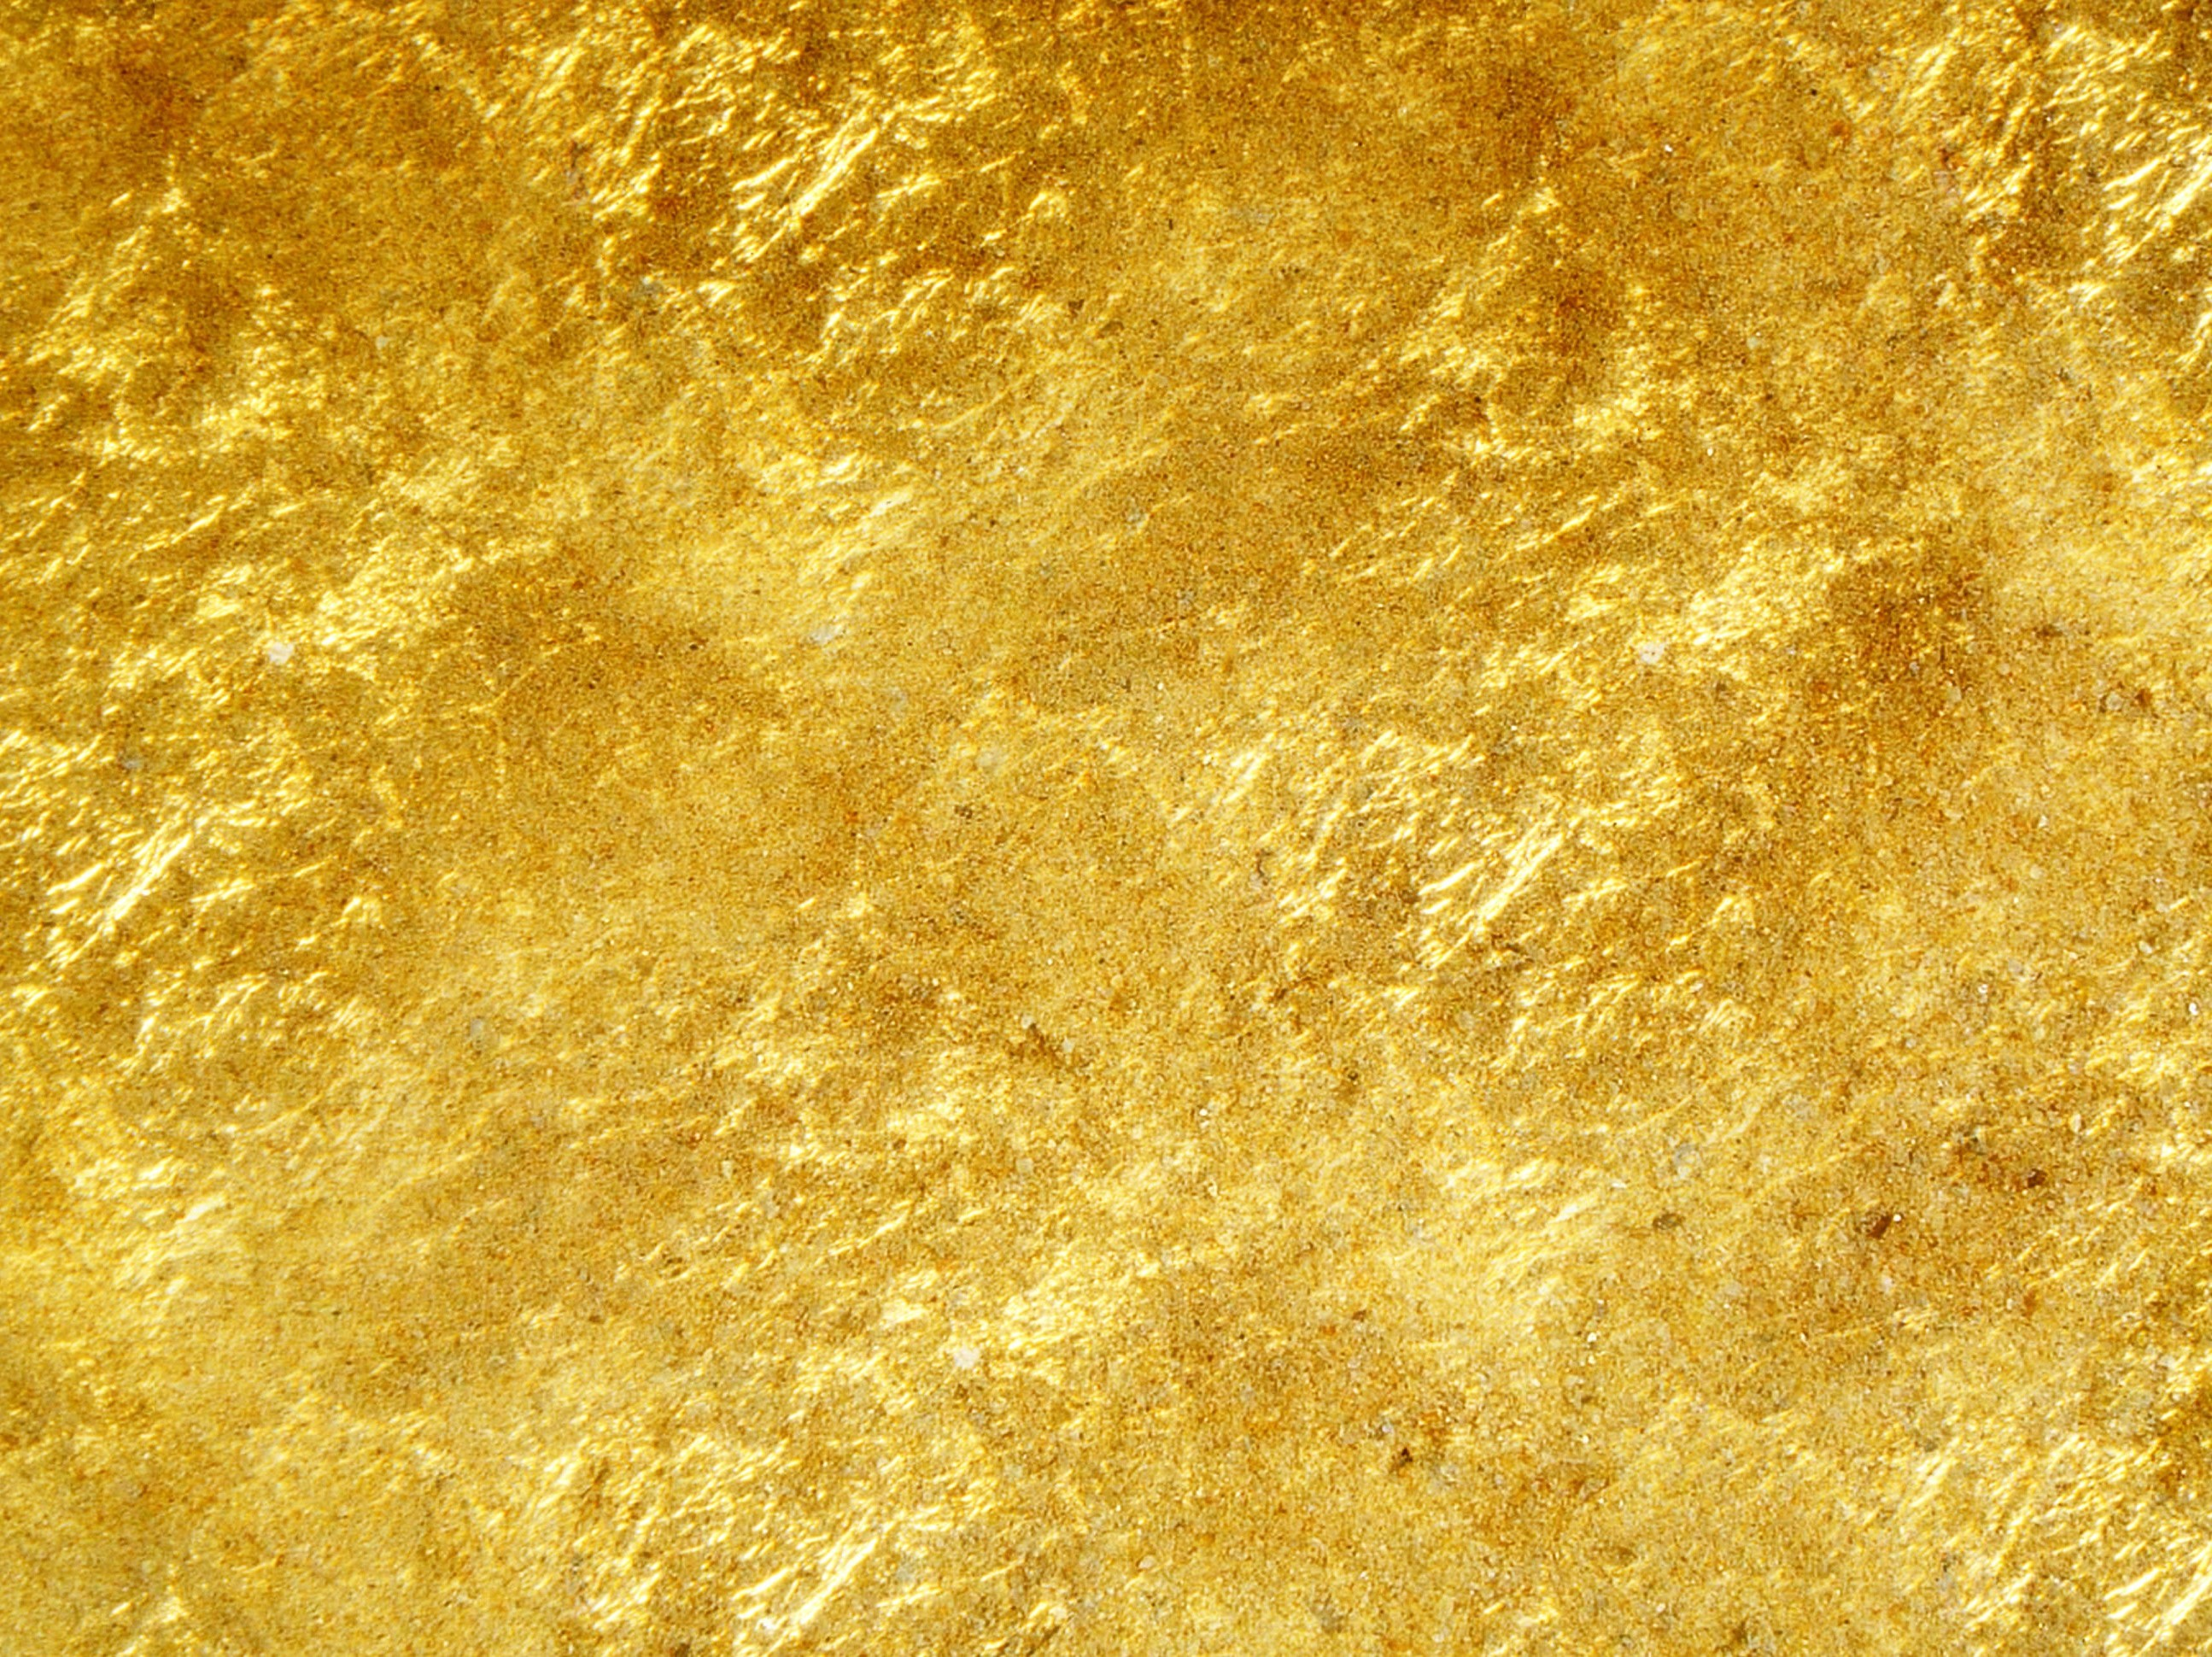 31 gold backgrounds download free amazing full hd - Gold desktop background ...